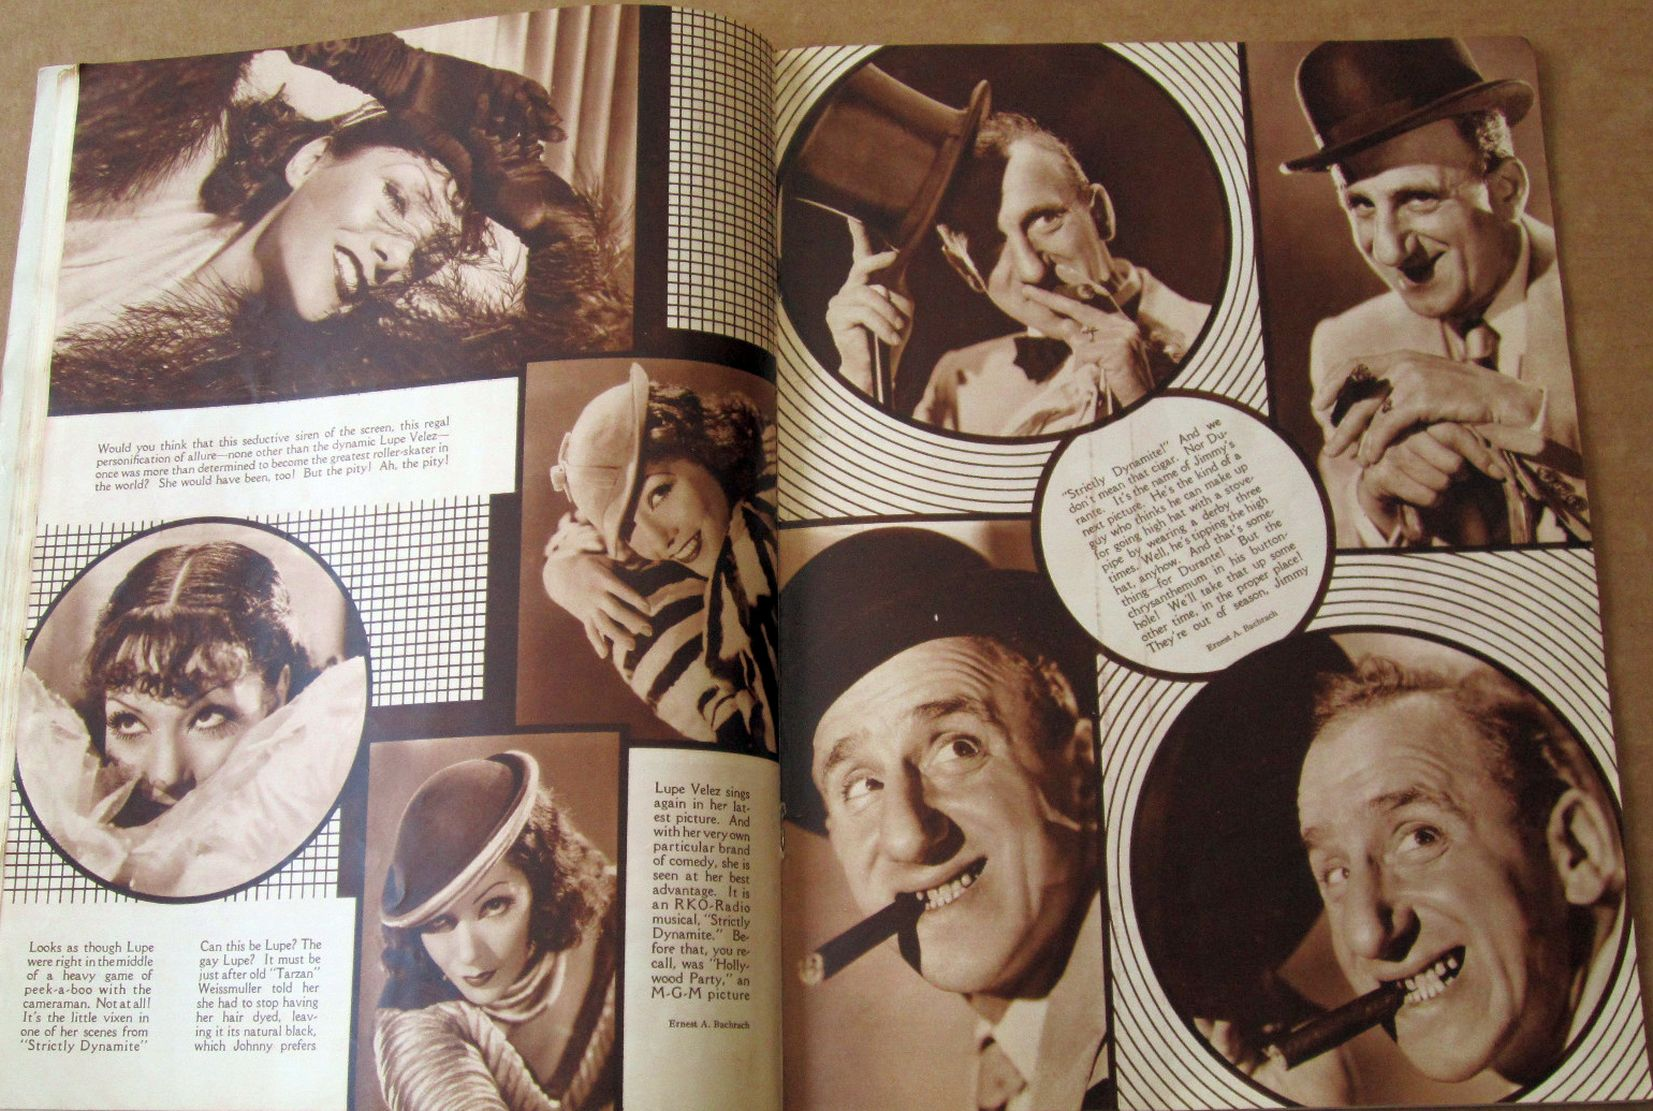 shadoplay june 1934 lupe velez jimmy durante 00a